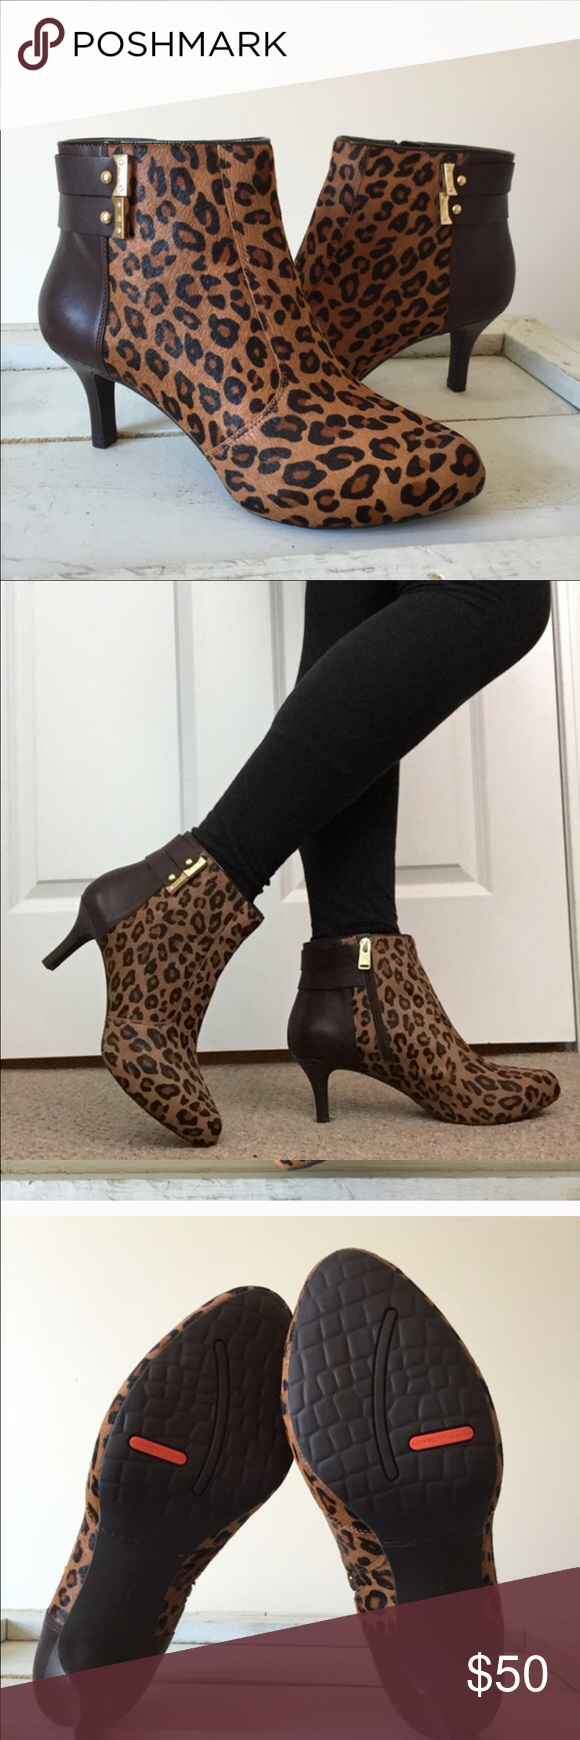 Stockport Leopard Booties, NWOT Sexy Leopard booties from Rockport. The Leopard pattern is dyed calf hair, the upper bootie is leather, and the sole is a grippy rubber material.  Be comfortable, yet stylish, these booties are cushioned and shock absorbing comfort.  2.5 heels, NWOT, No Box Rockp Shoes Heeled Boots